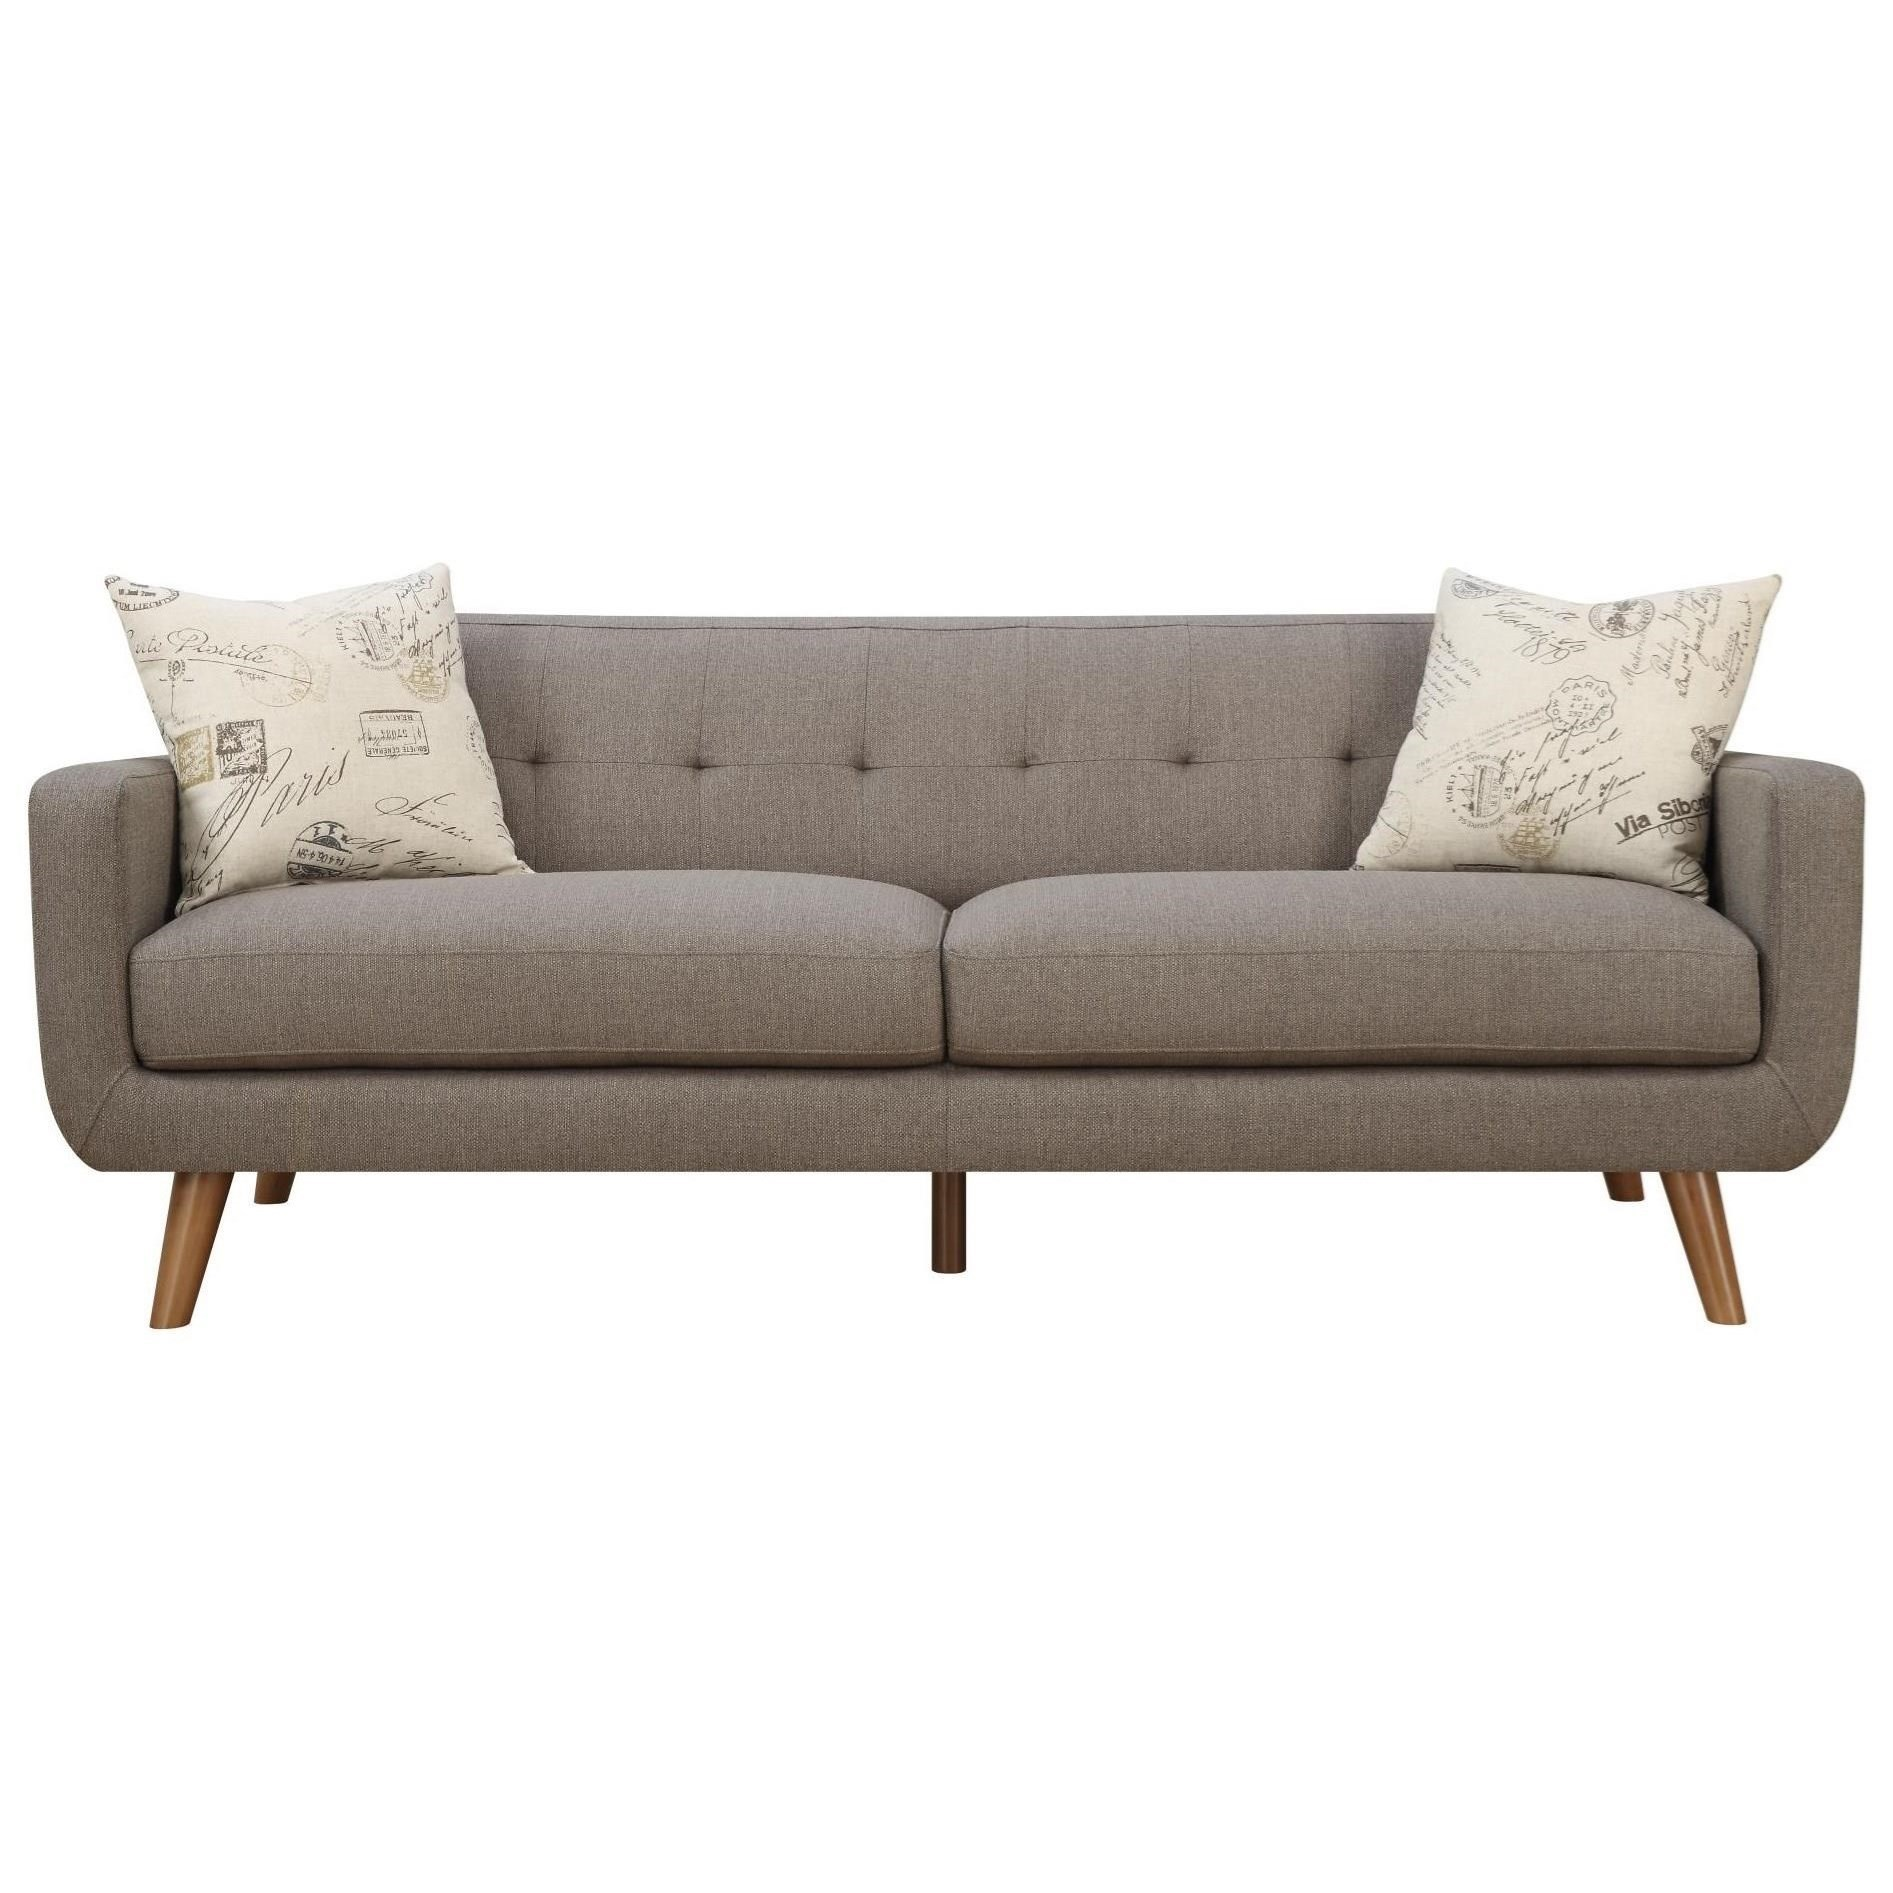 Home furniture sofa - Emerald Remix Sofa With 2 Accent Pillows